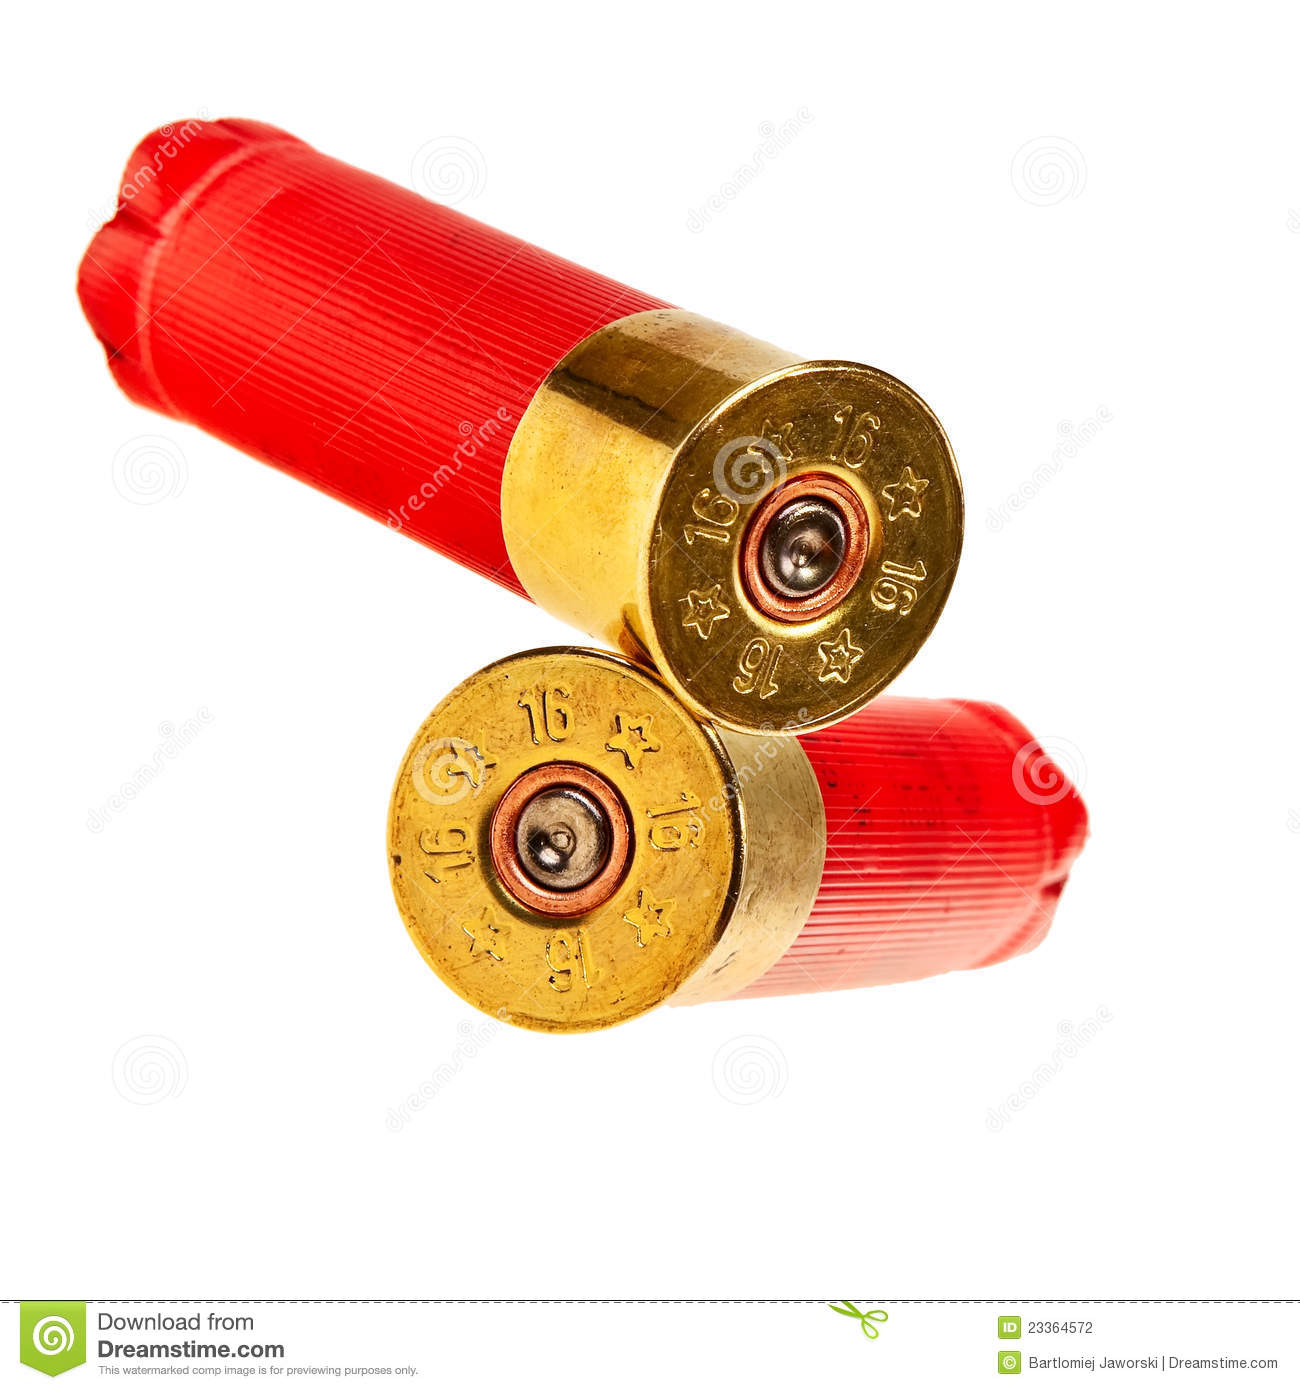 shotgun shell background - photo #8